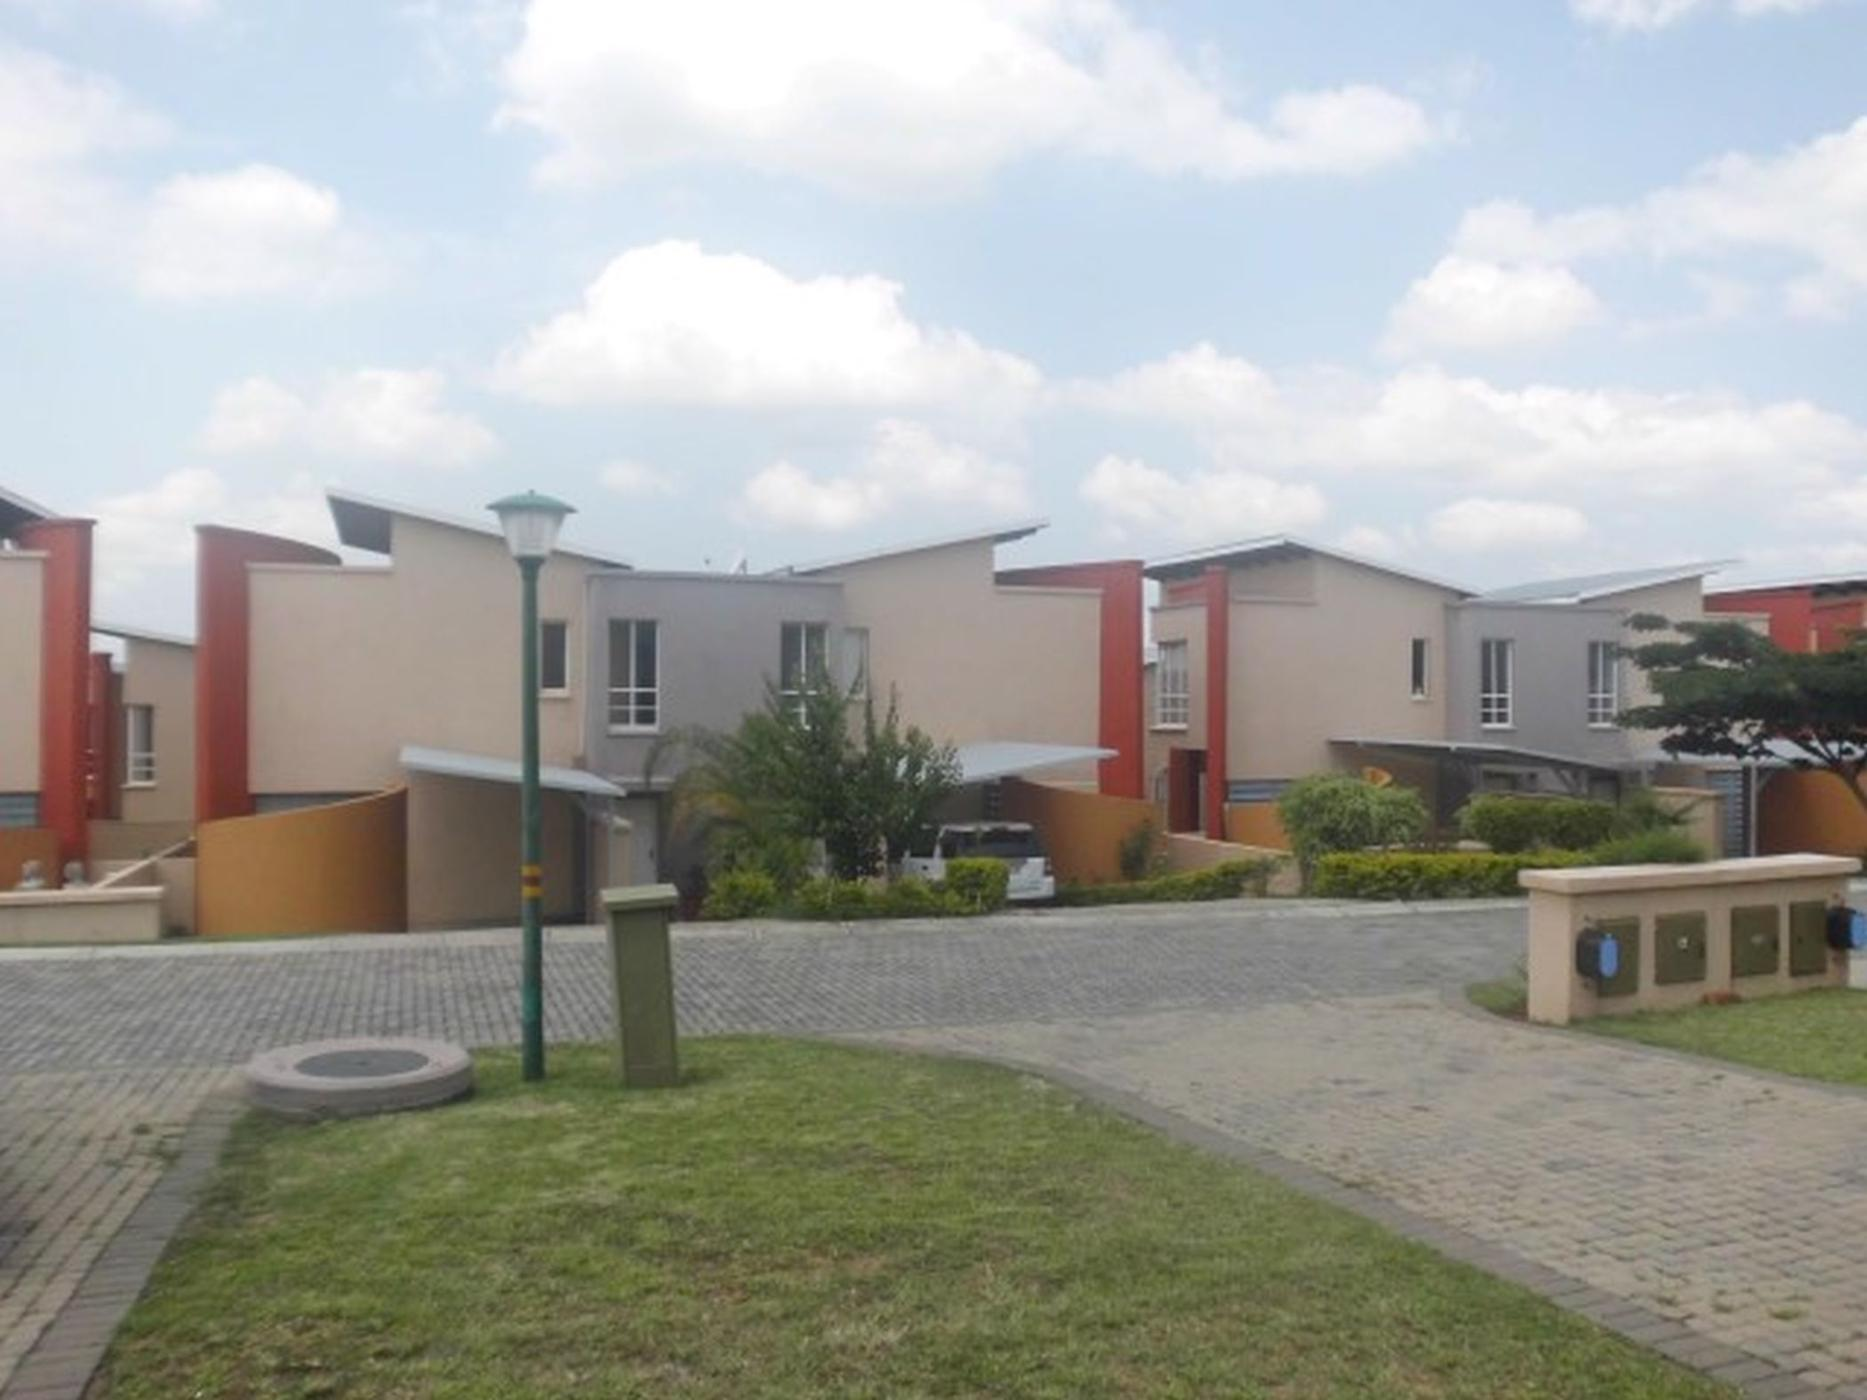 1 Bedroom Apartments To Rent Nelspruit Pam Golding